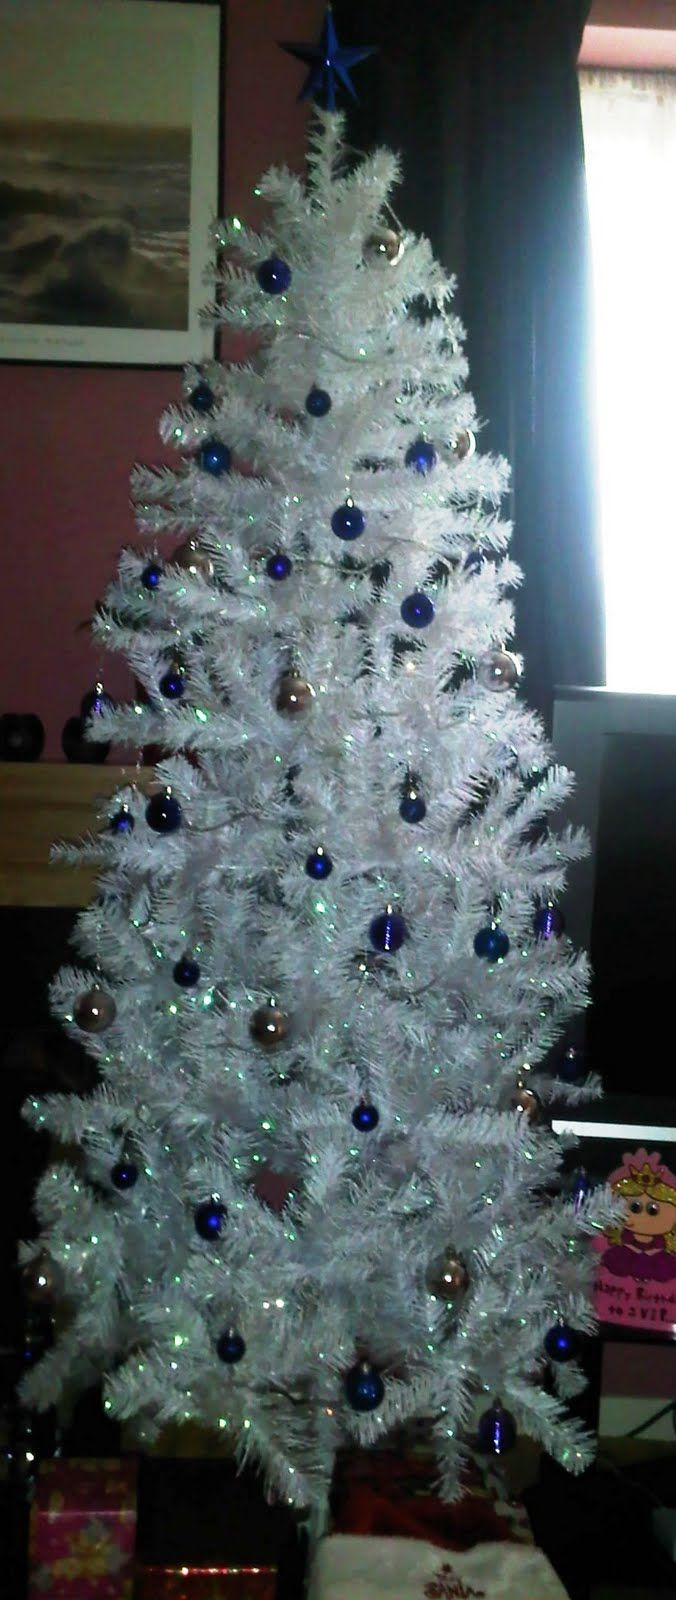 Christmas tree decorated with tinsel - White Christmas Tree Decorations Here Is A Picture Of My White Christmas Tinsel Tree With